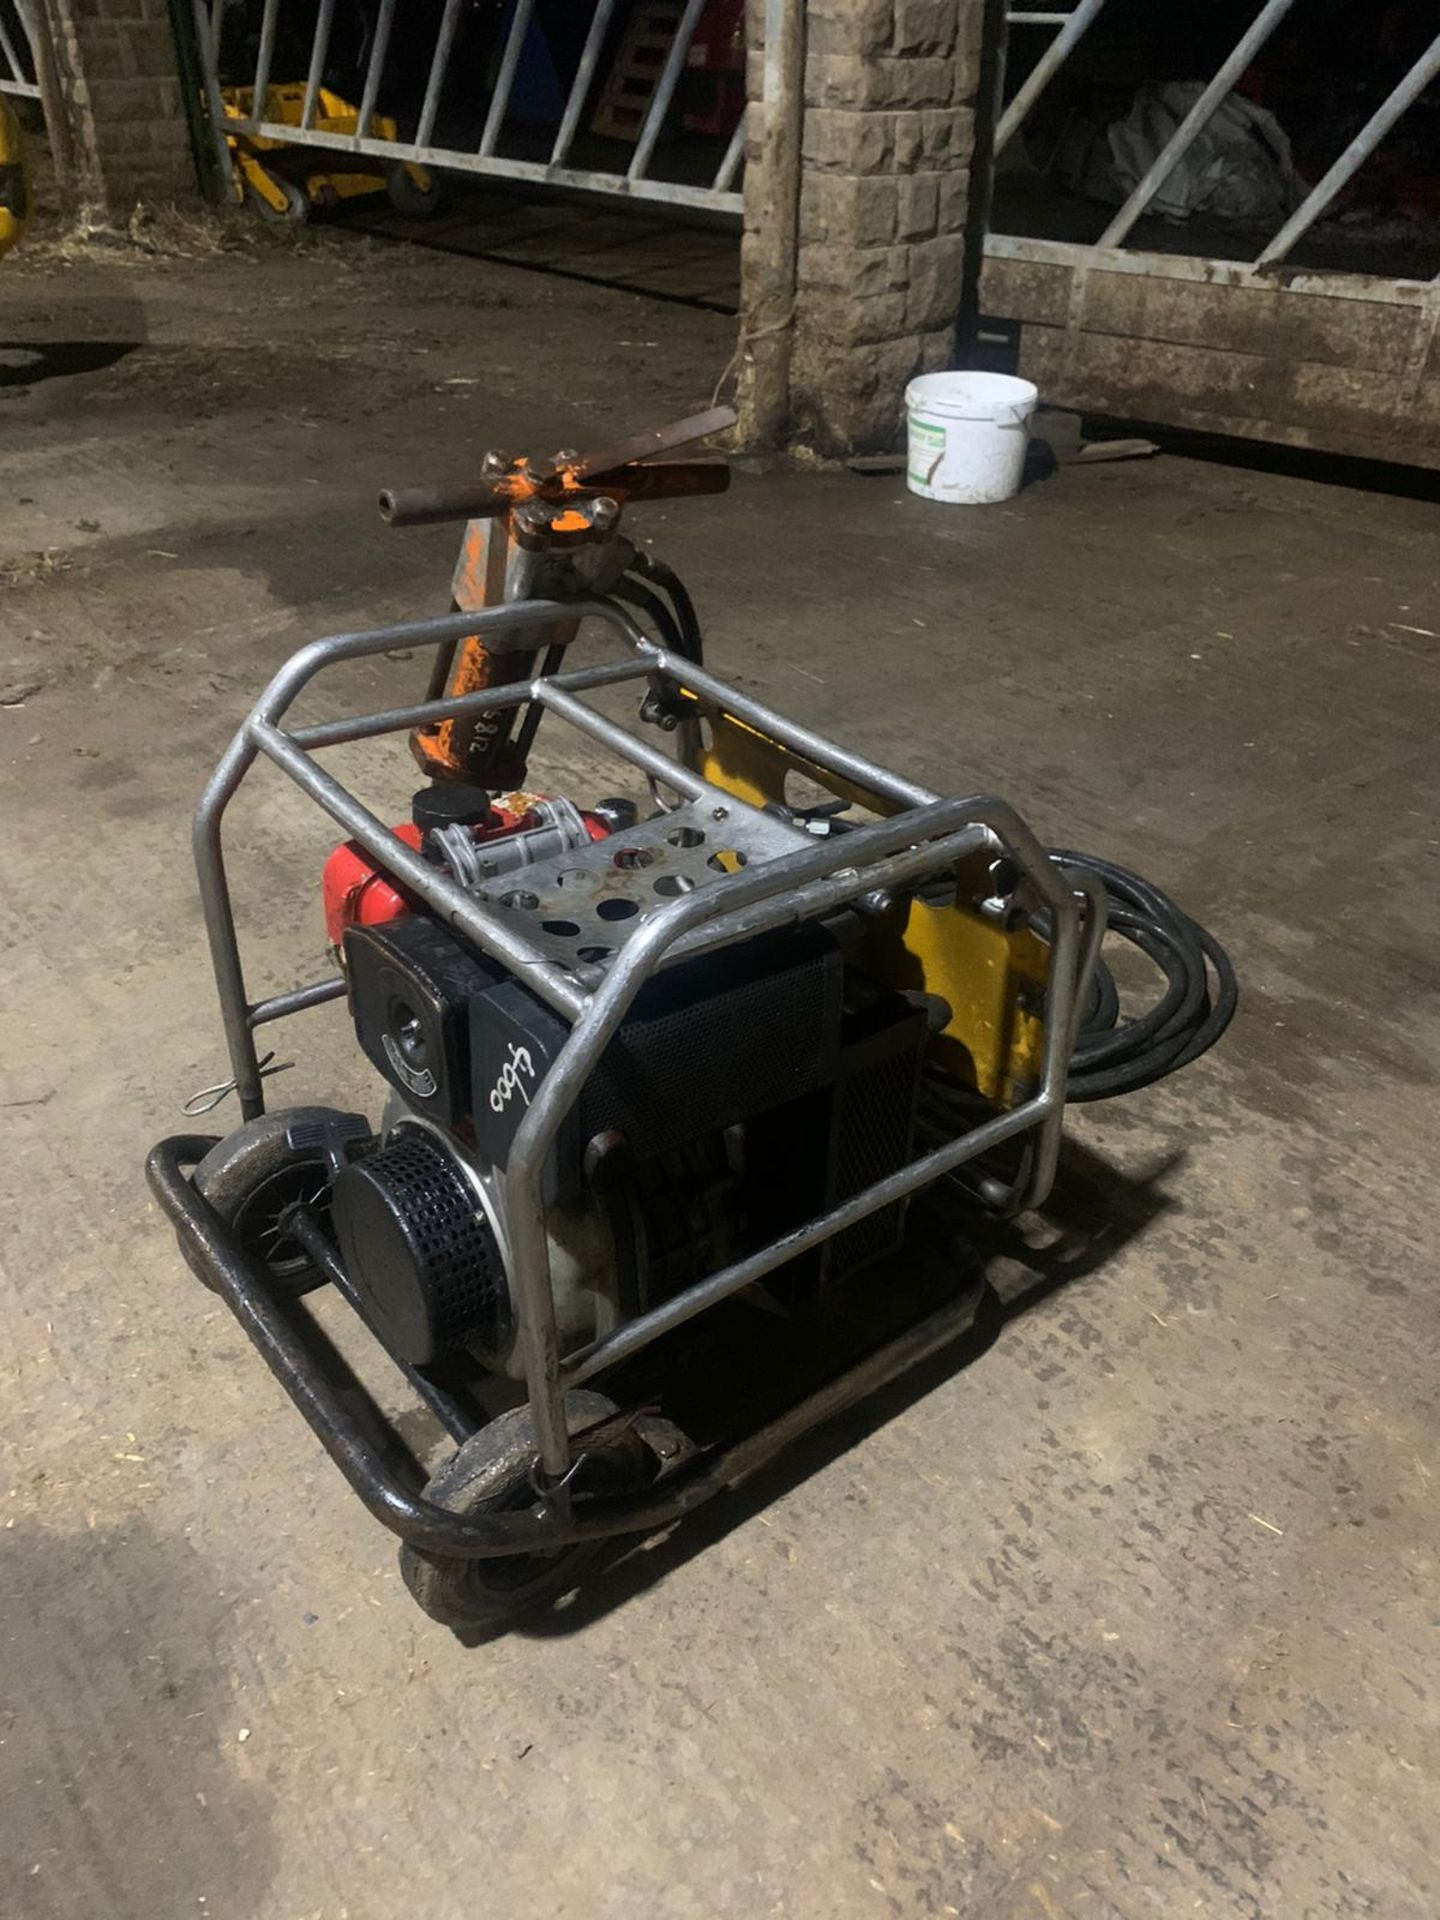 JCB Diesel Hydraulic Beaver Pack Yanmar Diesel L70 Engine Easy To Move Around Pipes Are Like New - Image 5 of 6